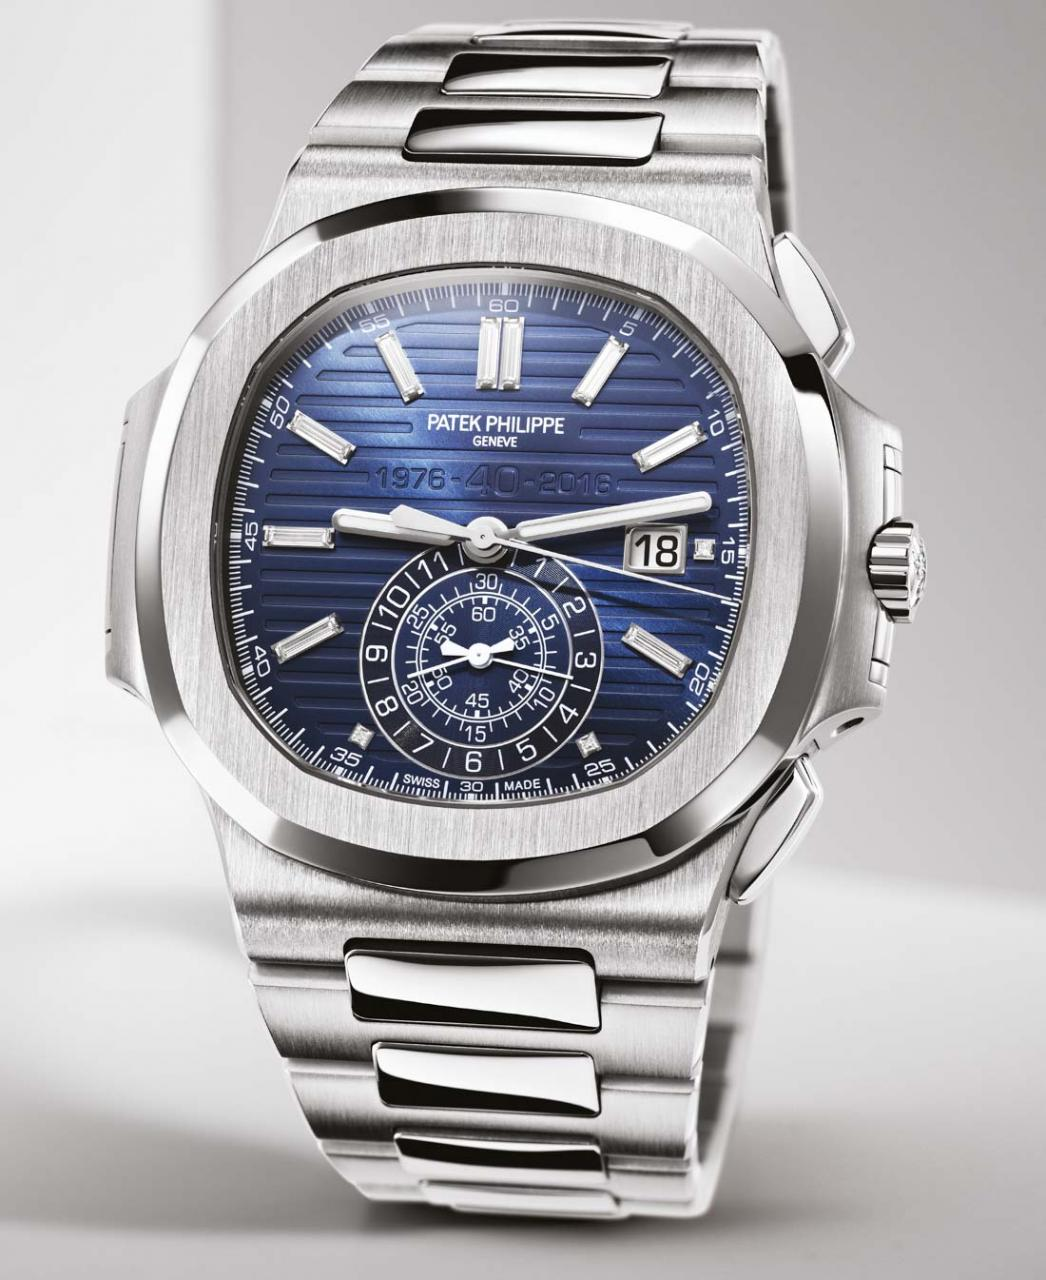 Patek Philippe Nautilus 40th Anniversary 5976/1G Watch Is 49.25mm Wide In 18k White Gold Watch Releases